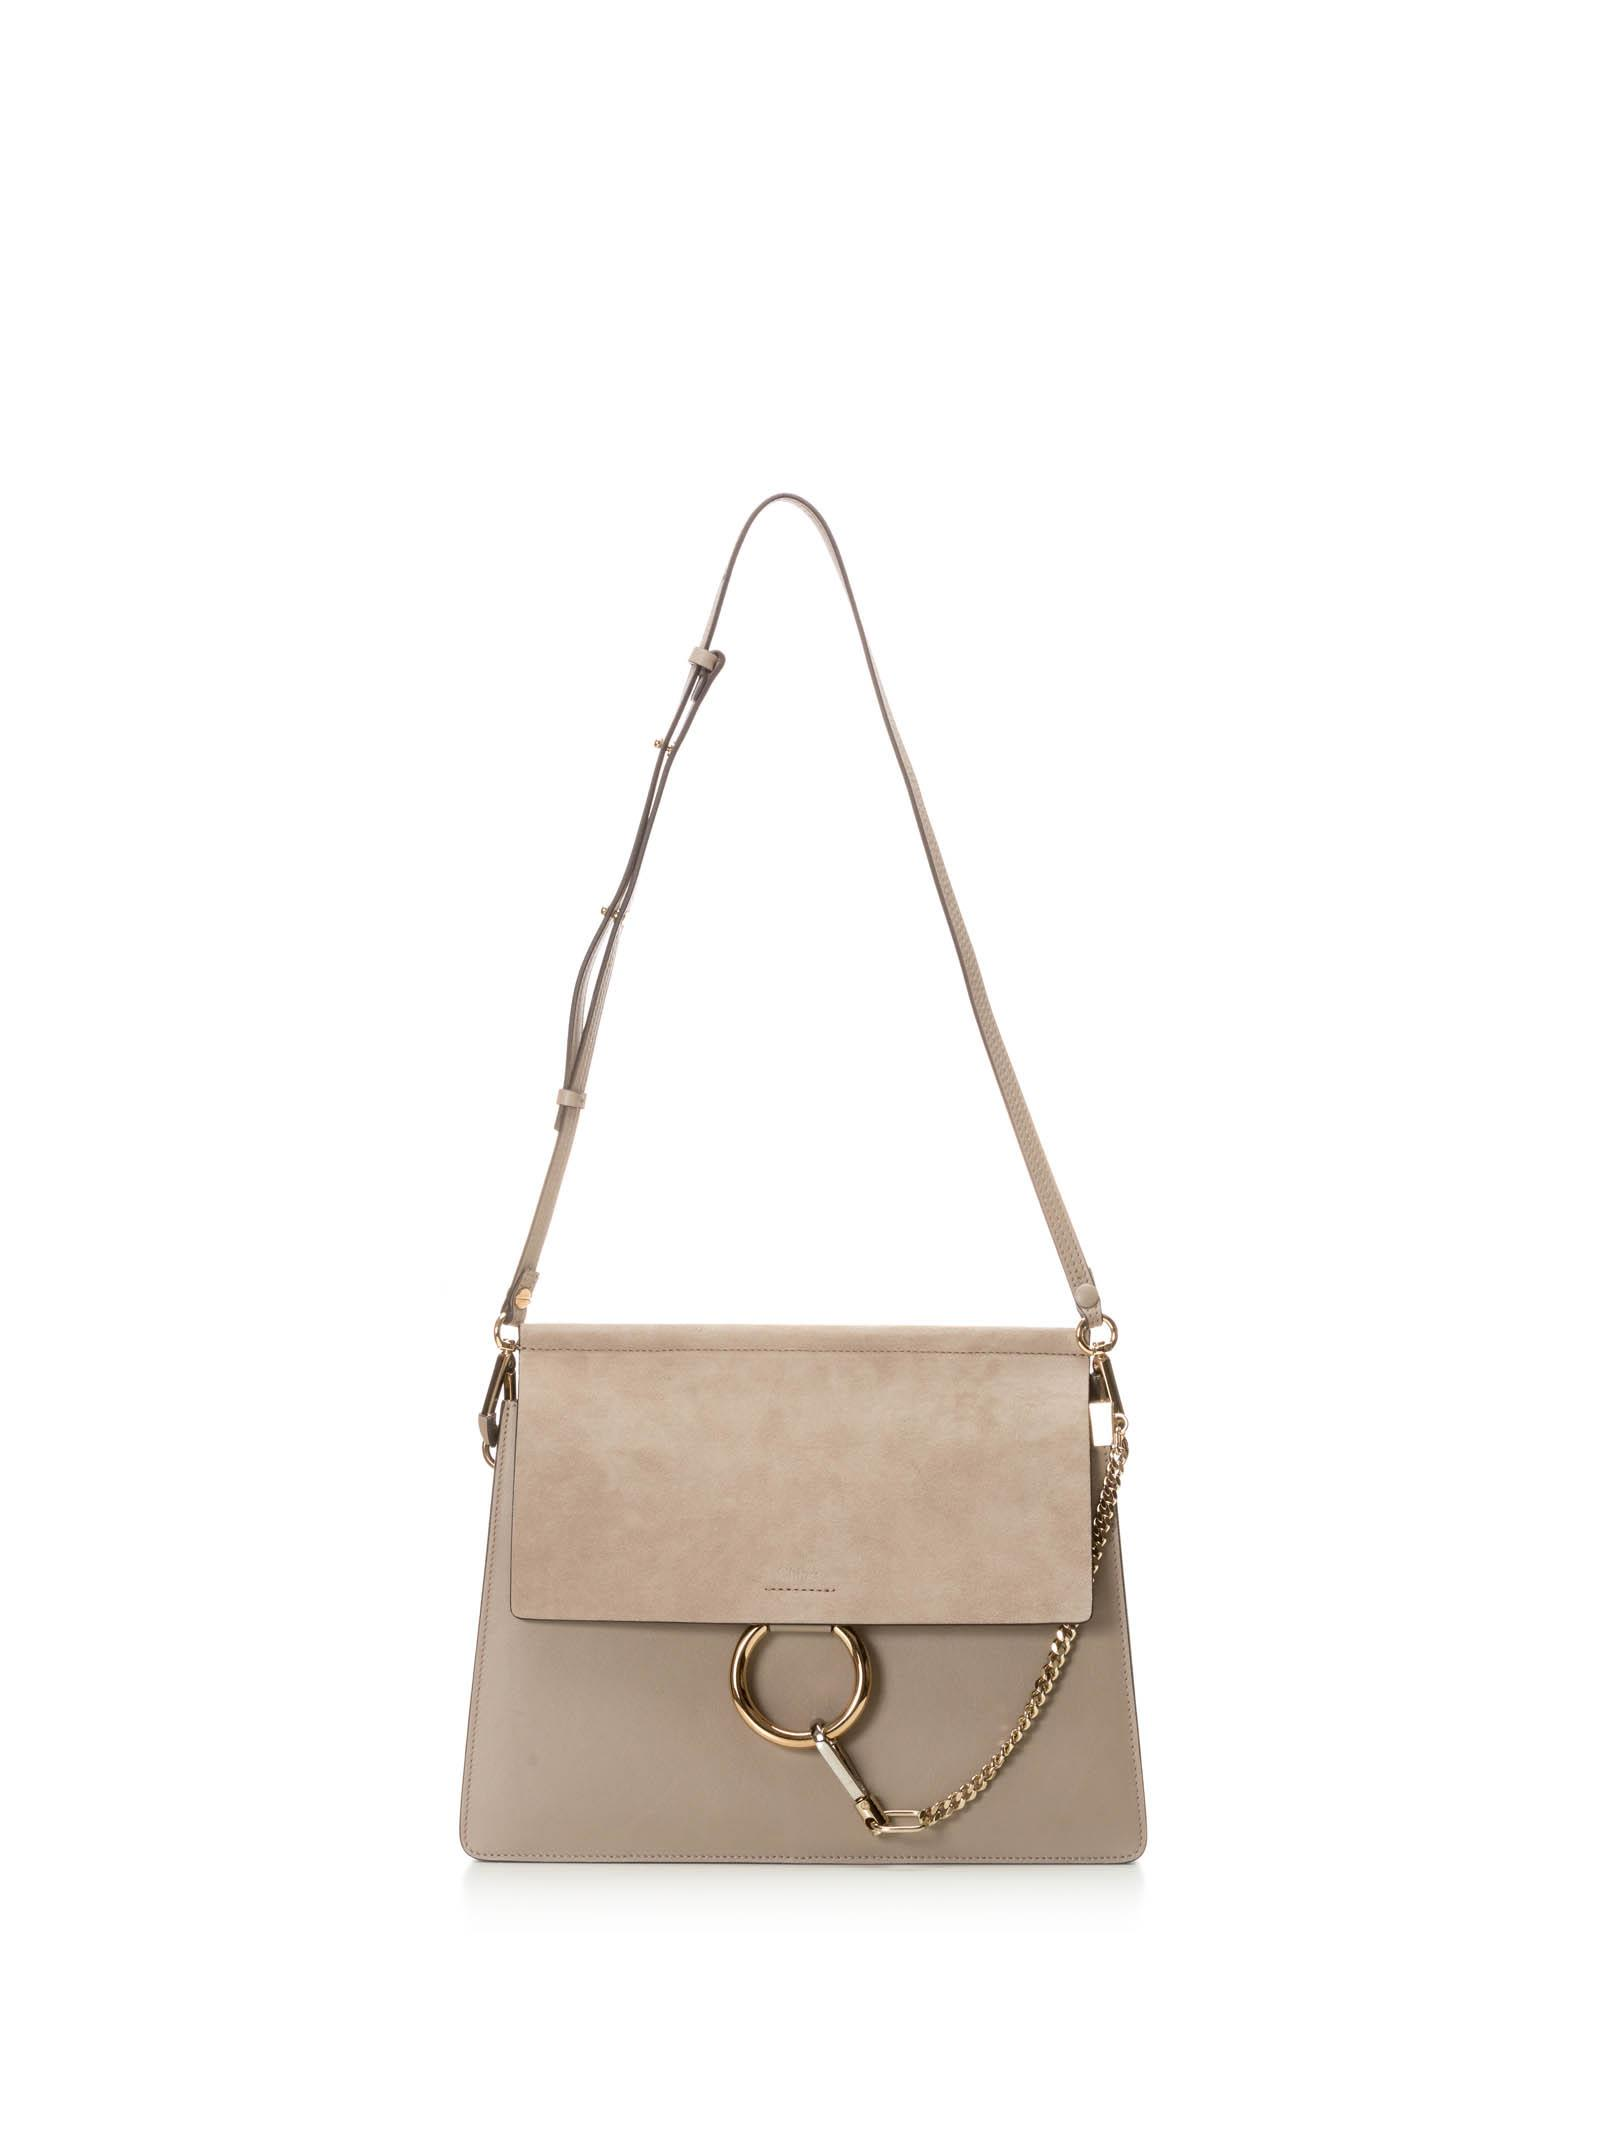 CHLOÉ CHLOE BEIGE FAYE SHOULDER BAG